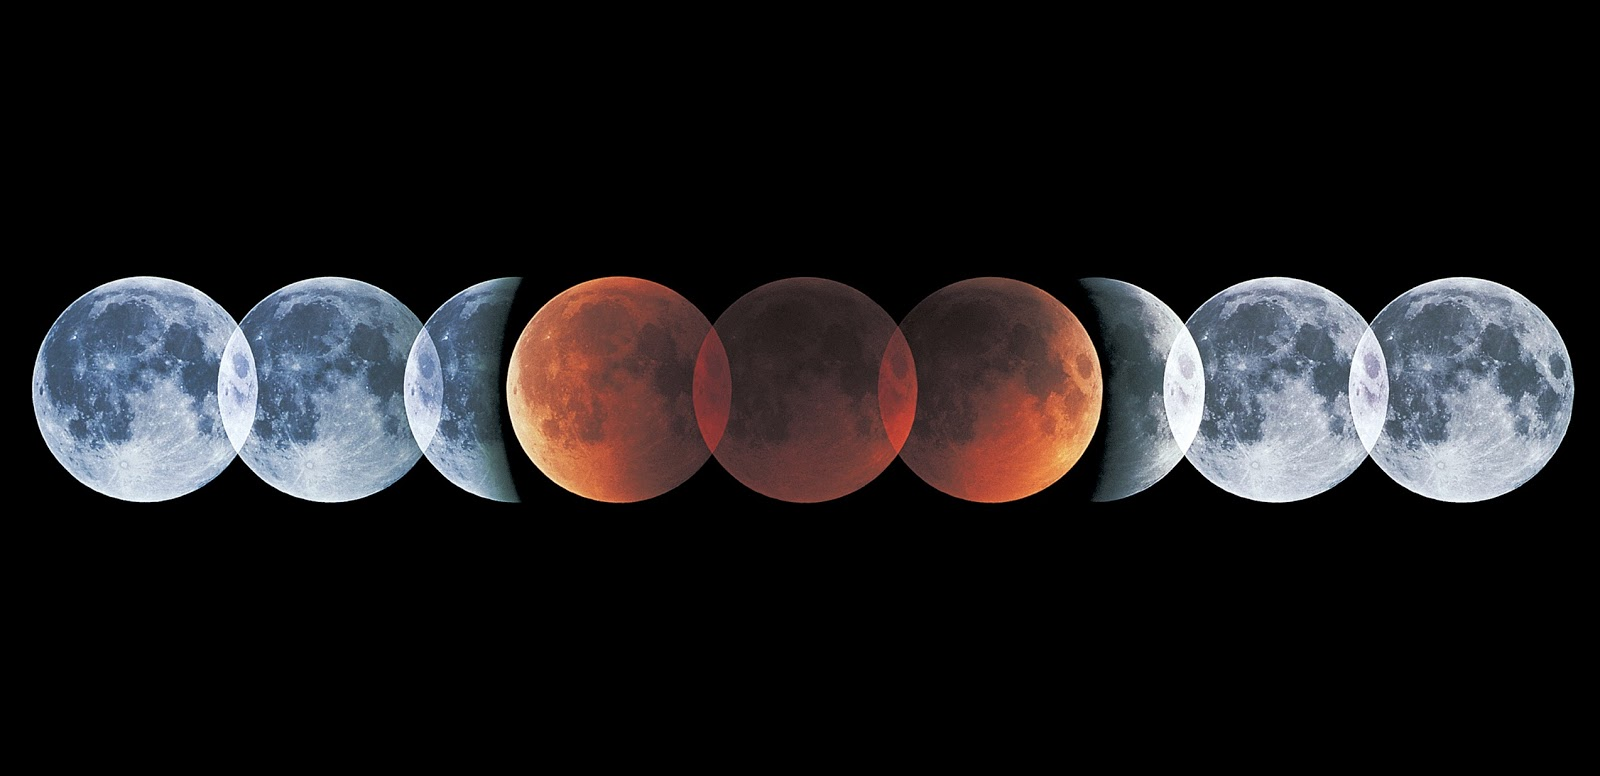 january 2 lunar eclipse horoscope